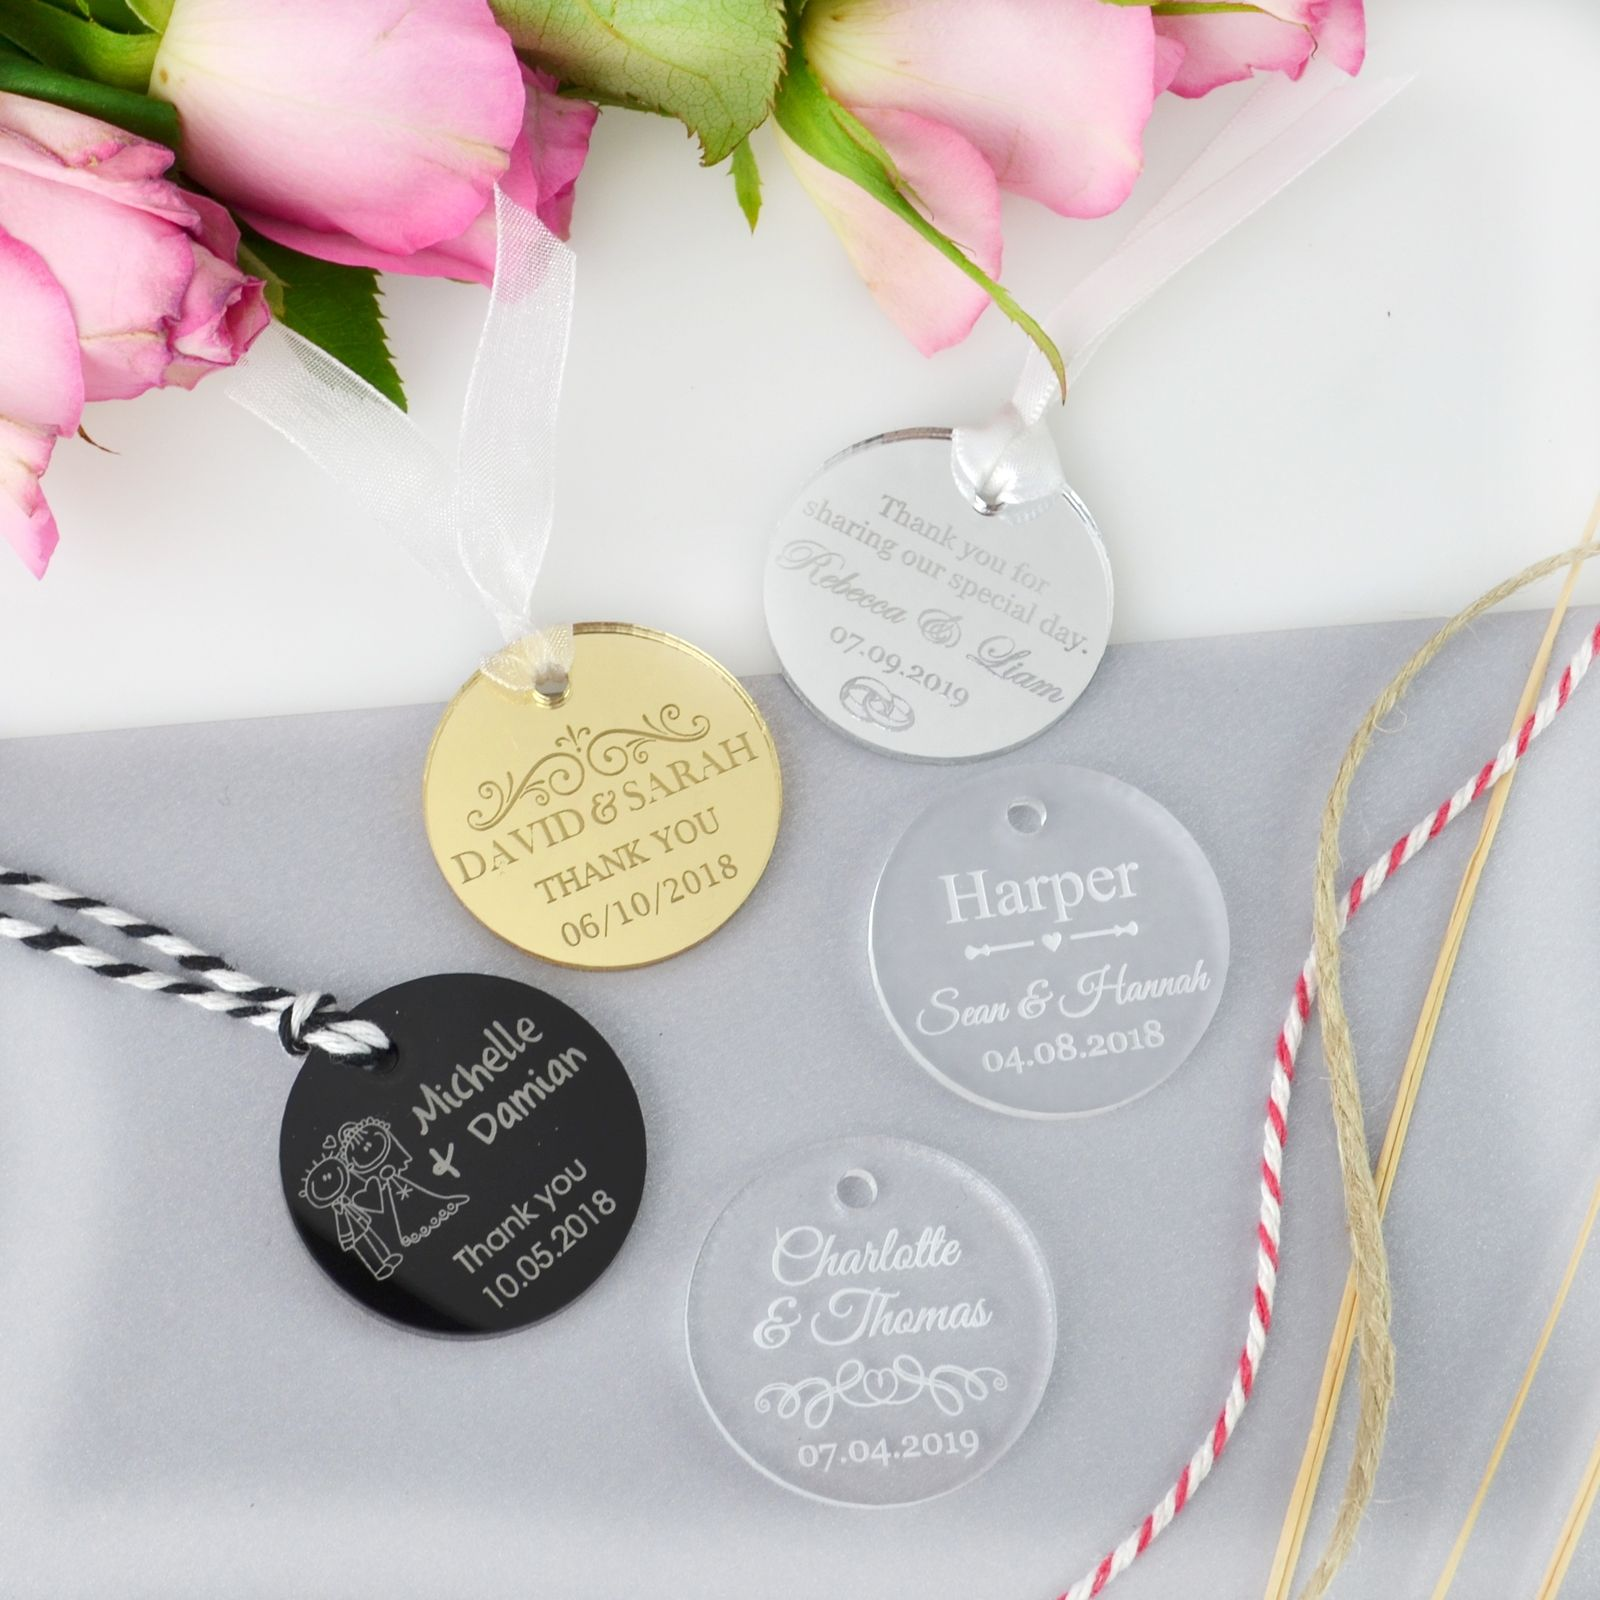 Round Acrylic Wedding Gift Tags | Getting ready... | Pinterest ...